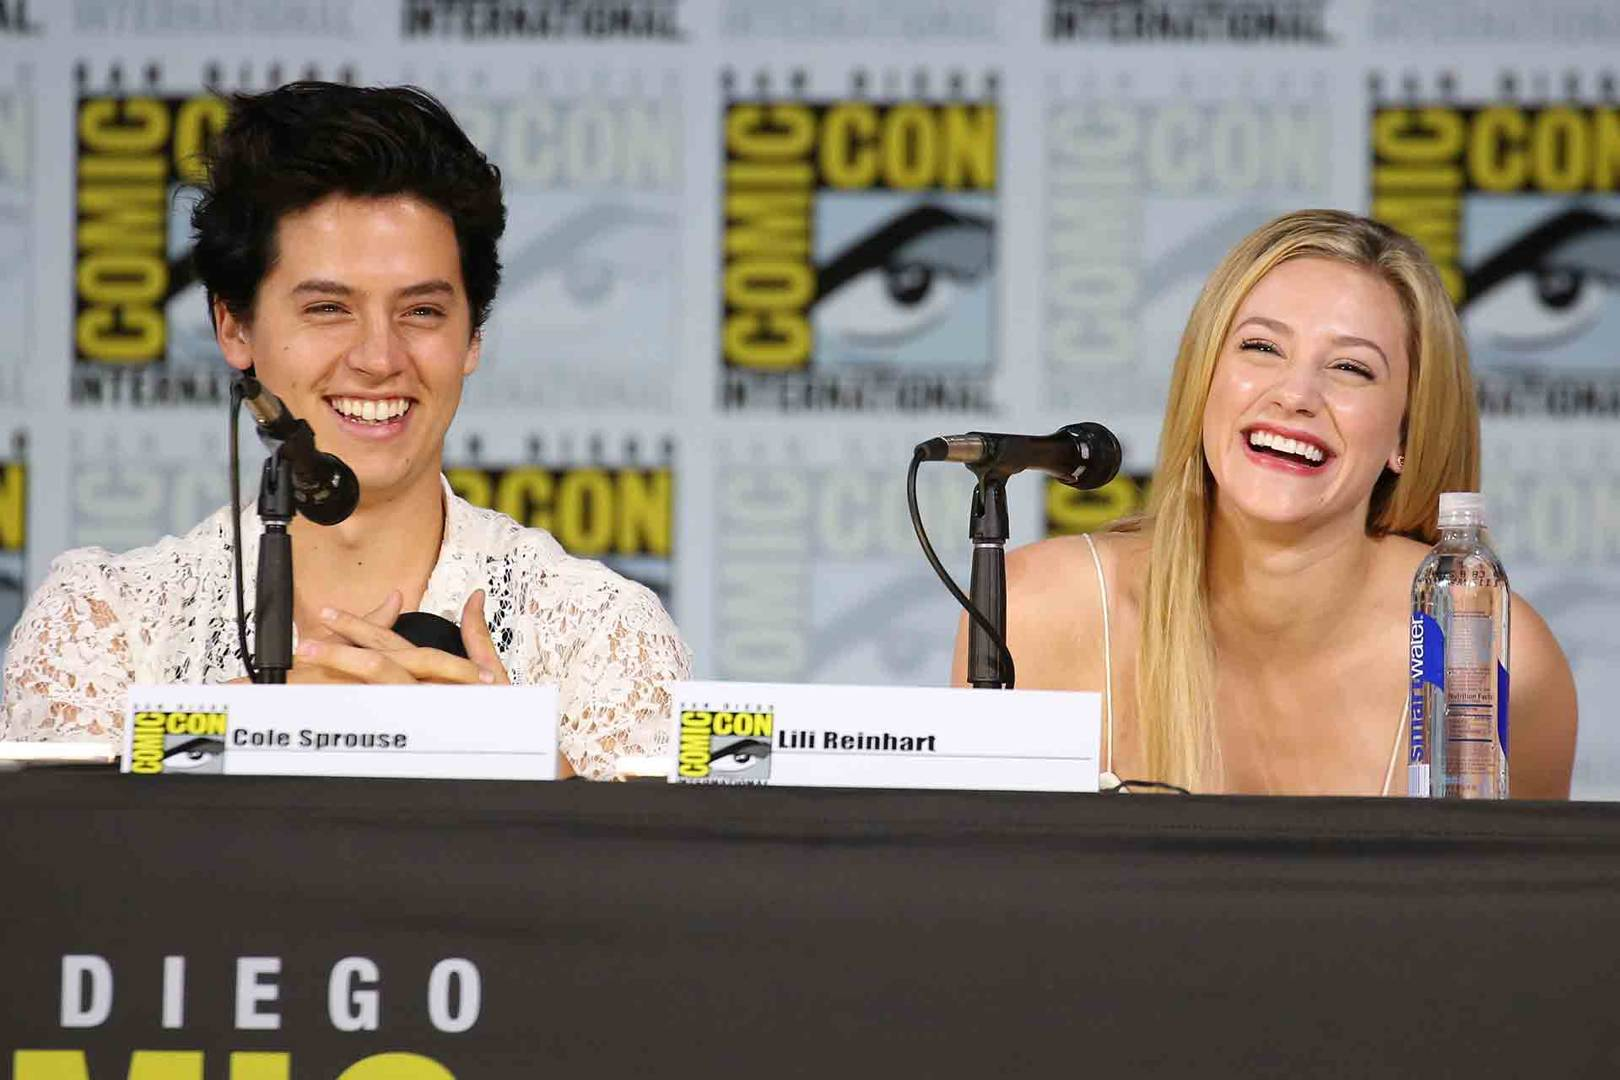 Who is lili reinhart dating 2018